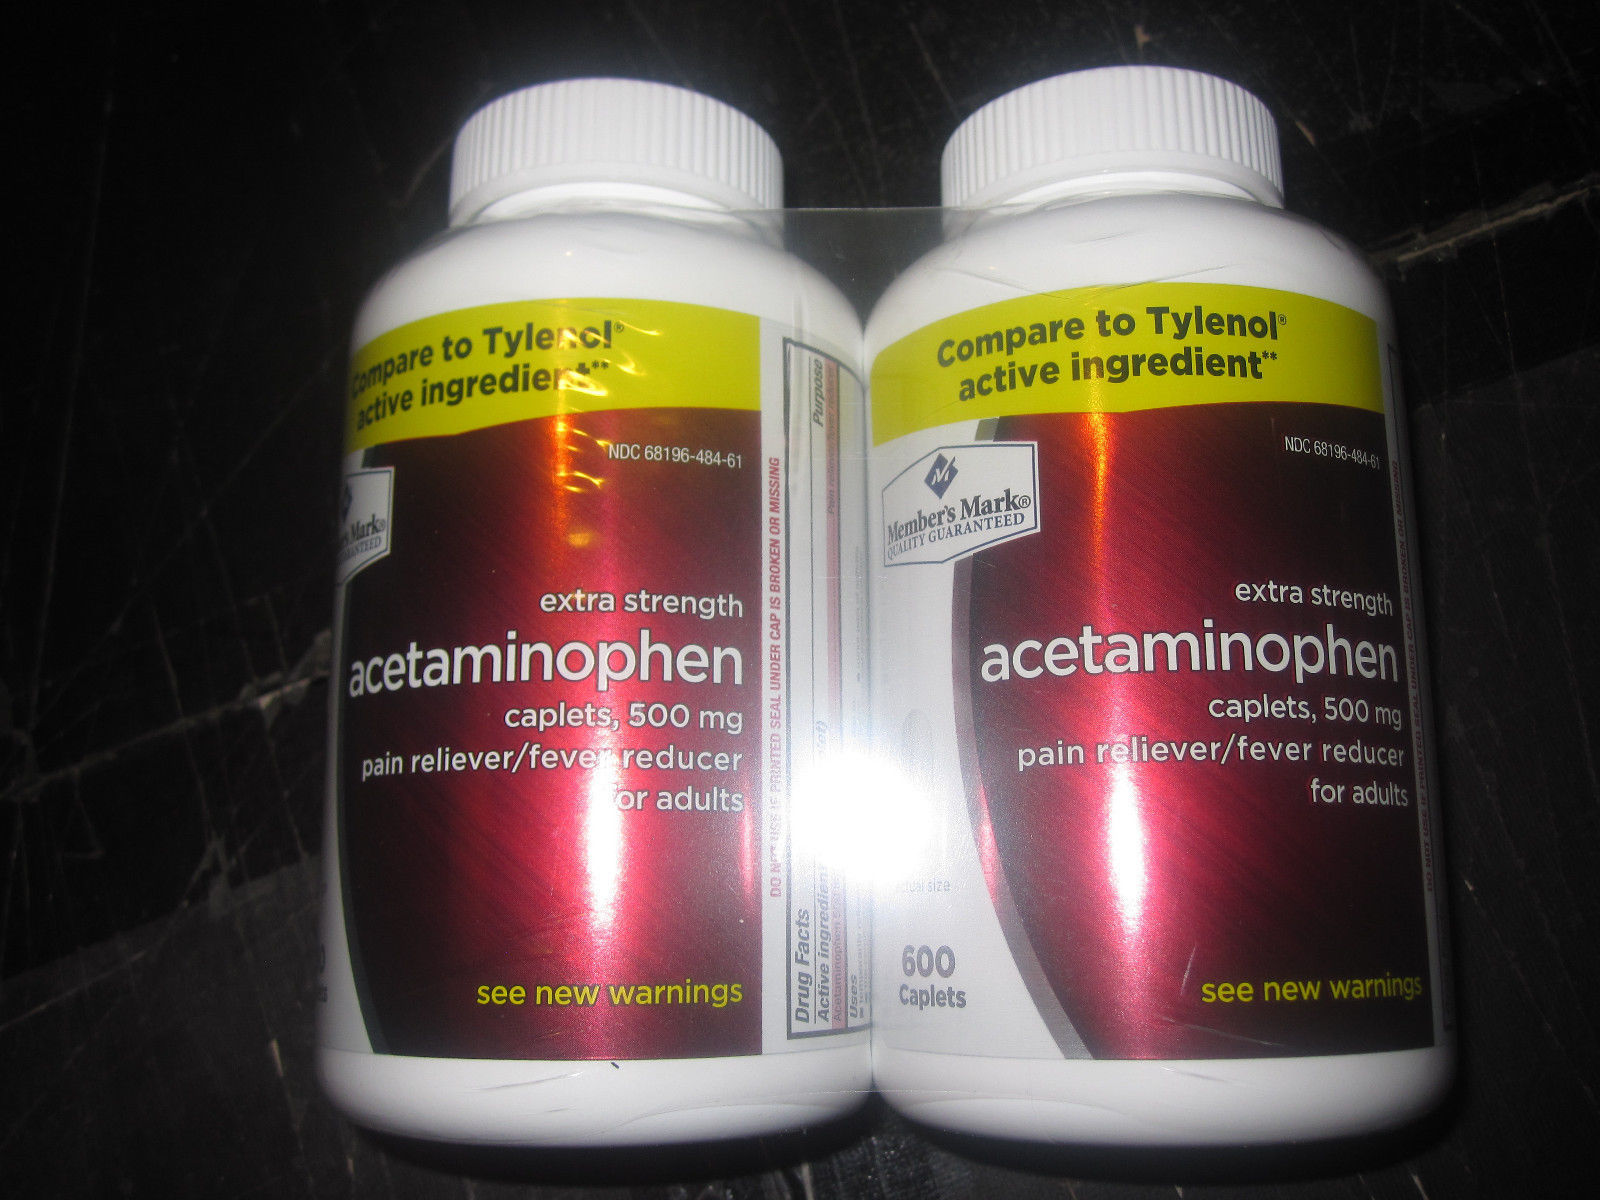 Extra Strength Acetaminophen Member's Mark 2-600 Caplets 500mg